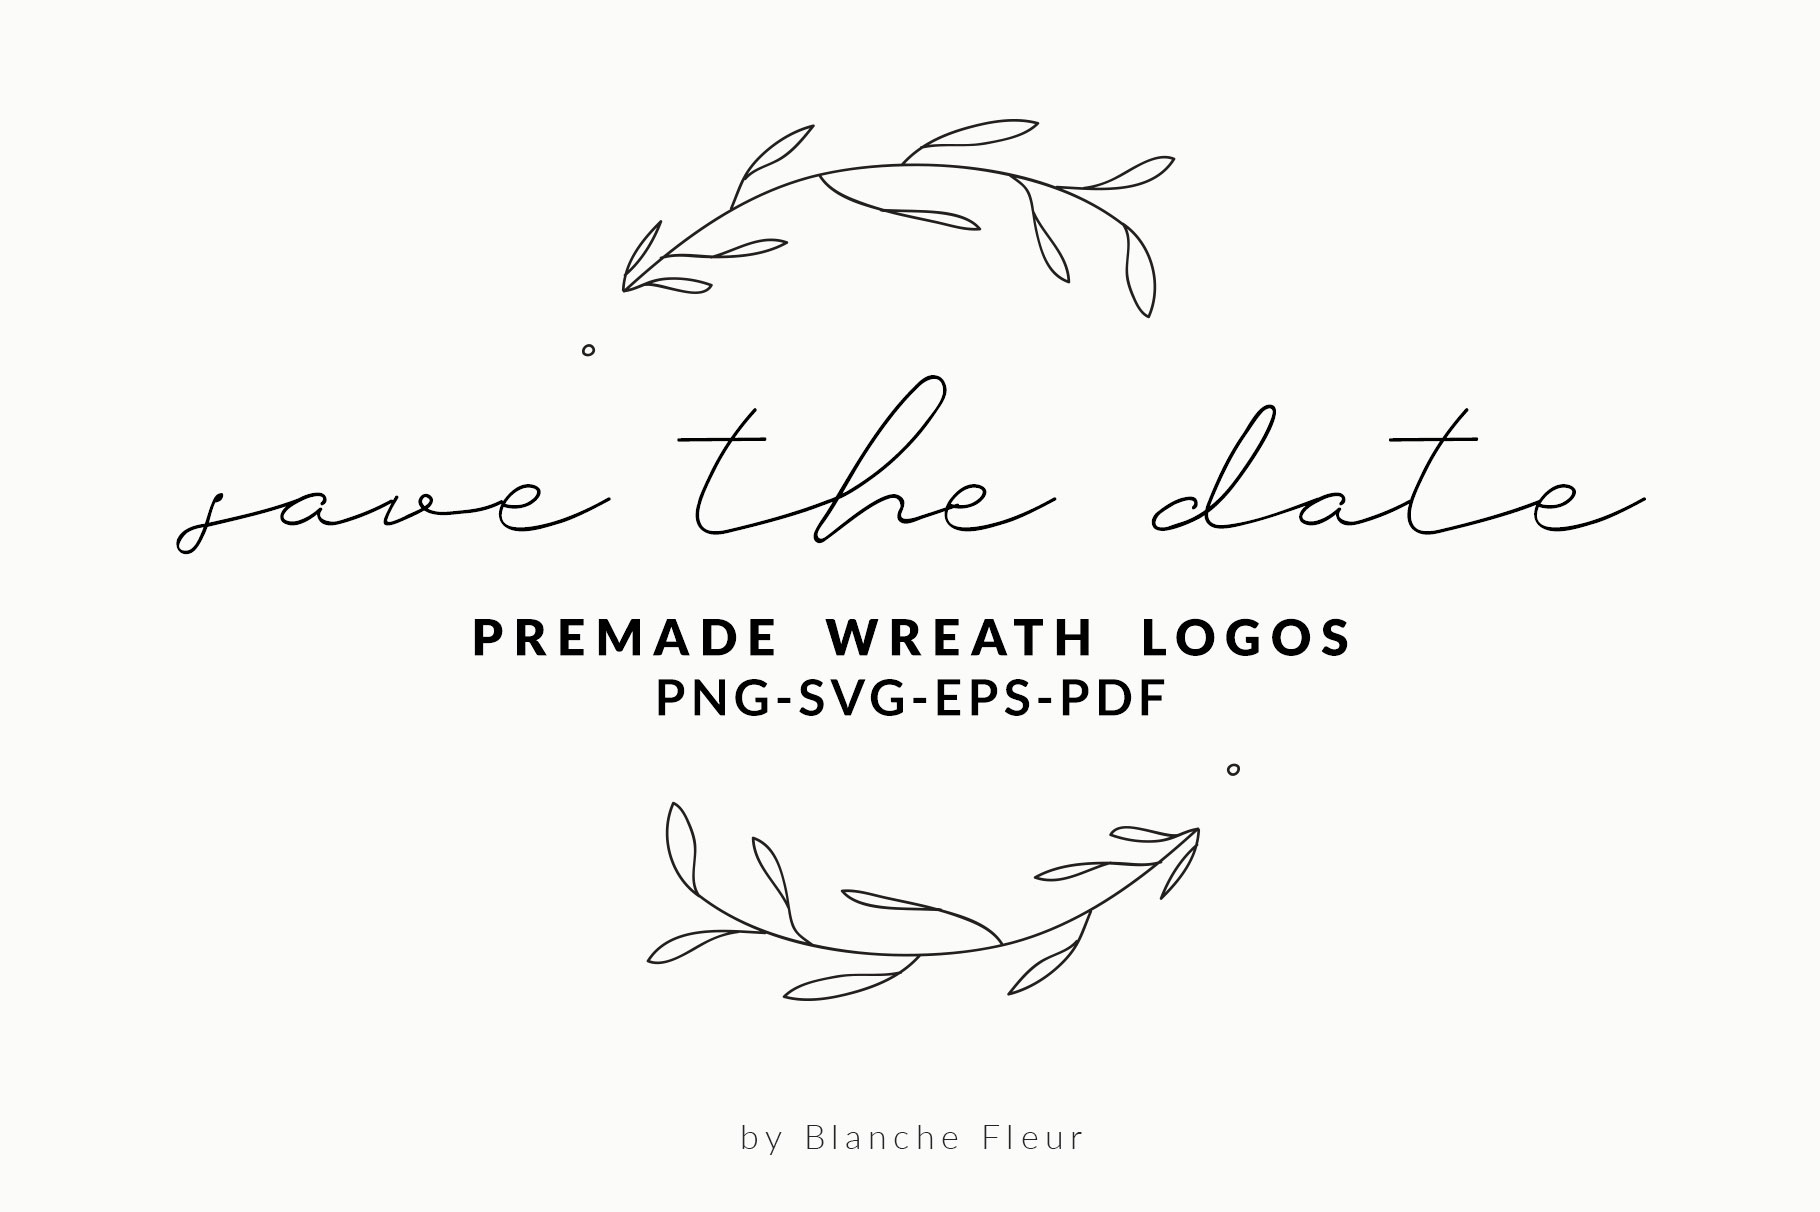 Save The Date Premade Wreath Logos example image 1